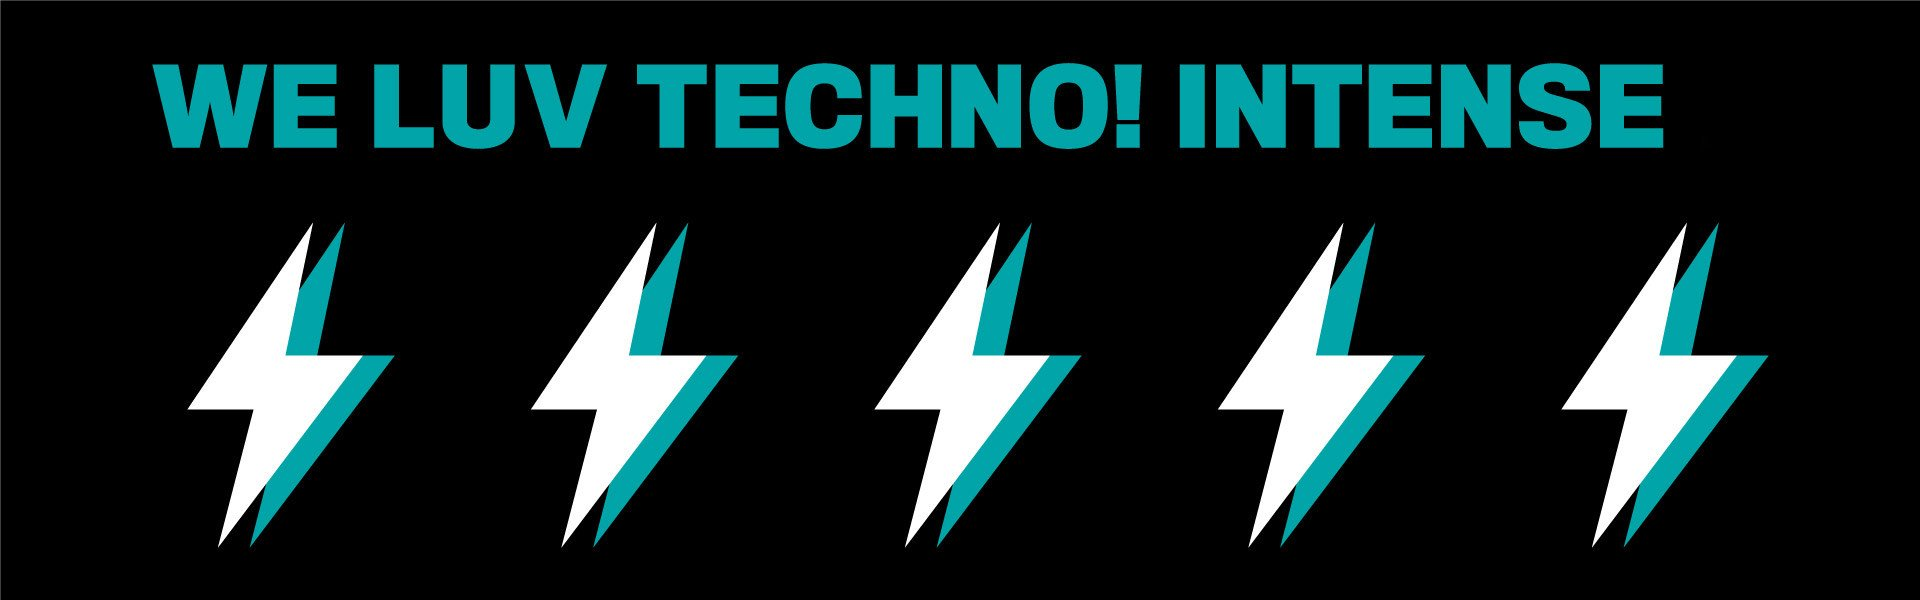 We Luv Techno! Intense w/ ANNA, Headless Horseman (live), Wehbba